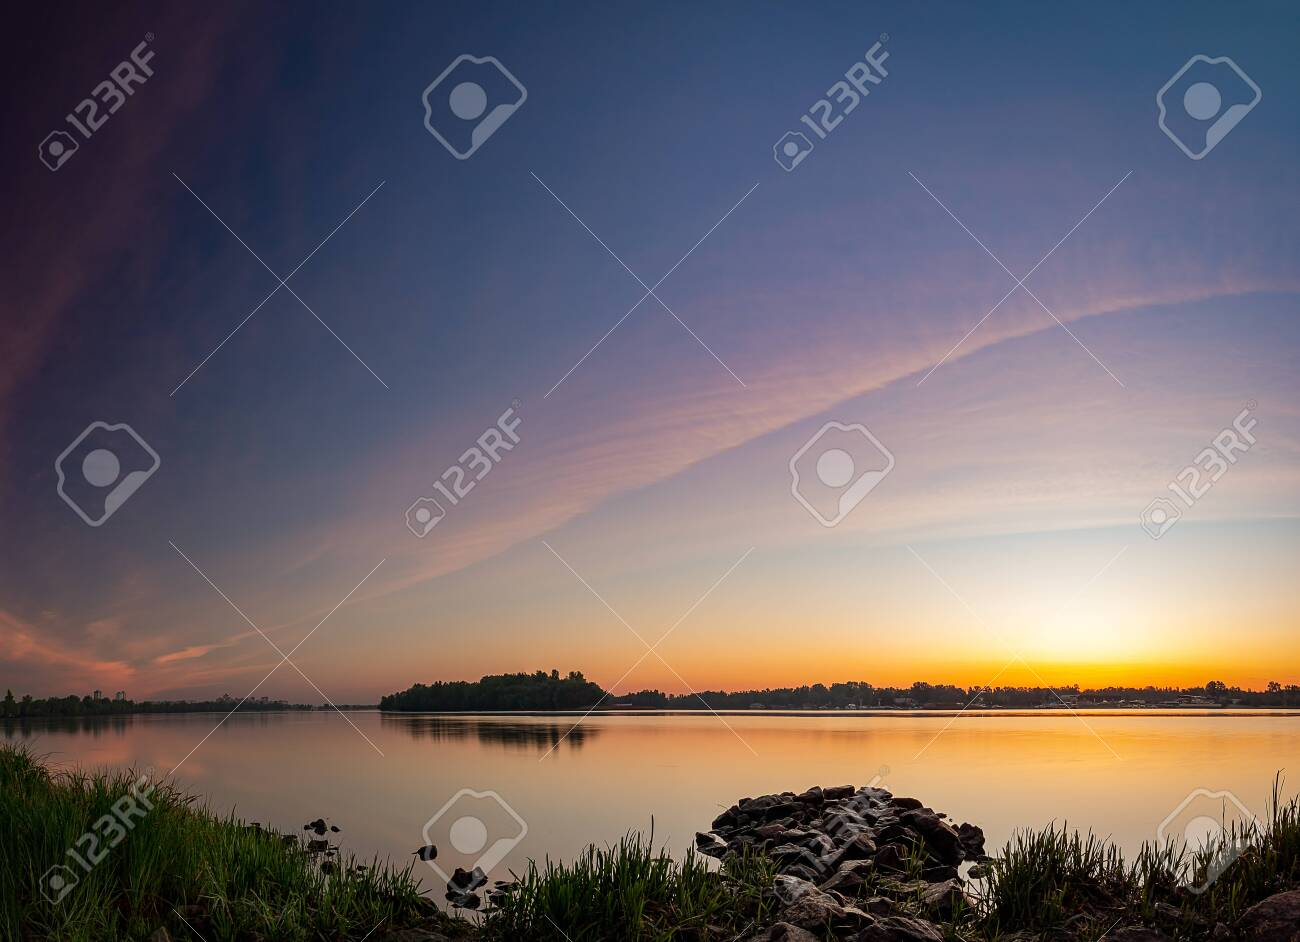 Beautiful summer sunset in the lake. HDR image - 148377794